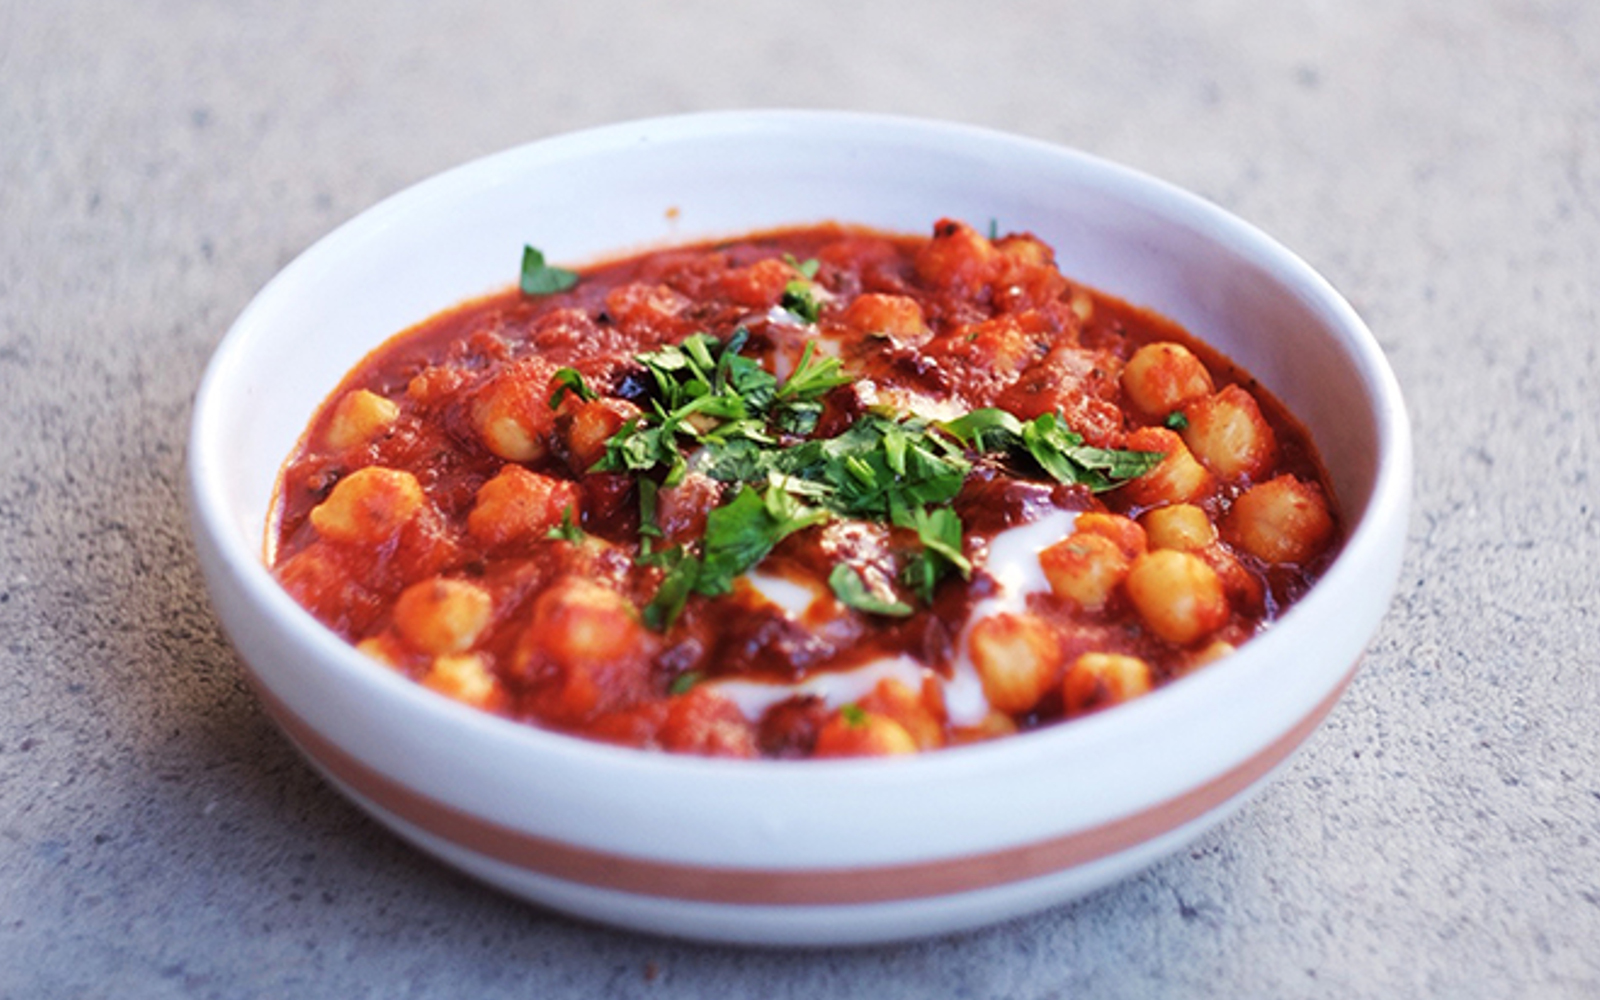 Roasted Tomato and Chickpeas Stew [Vegan] | One Green Planet